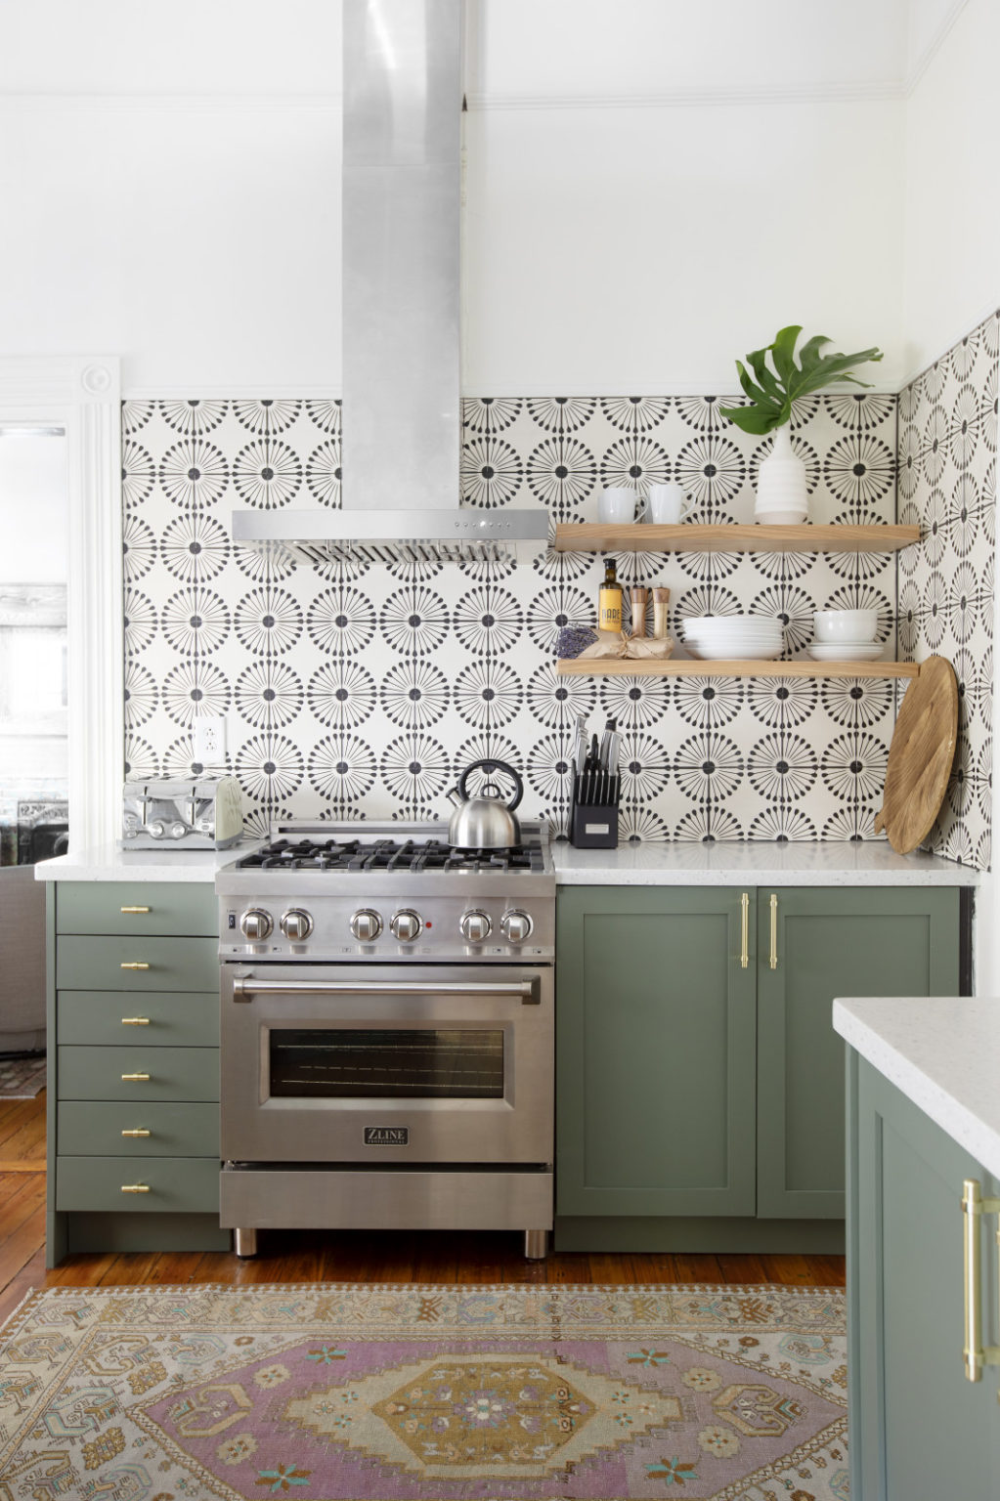 Best of 2020 Tile Designs: Take a Look at the Most